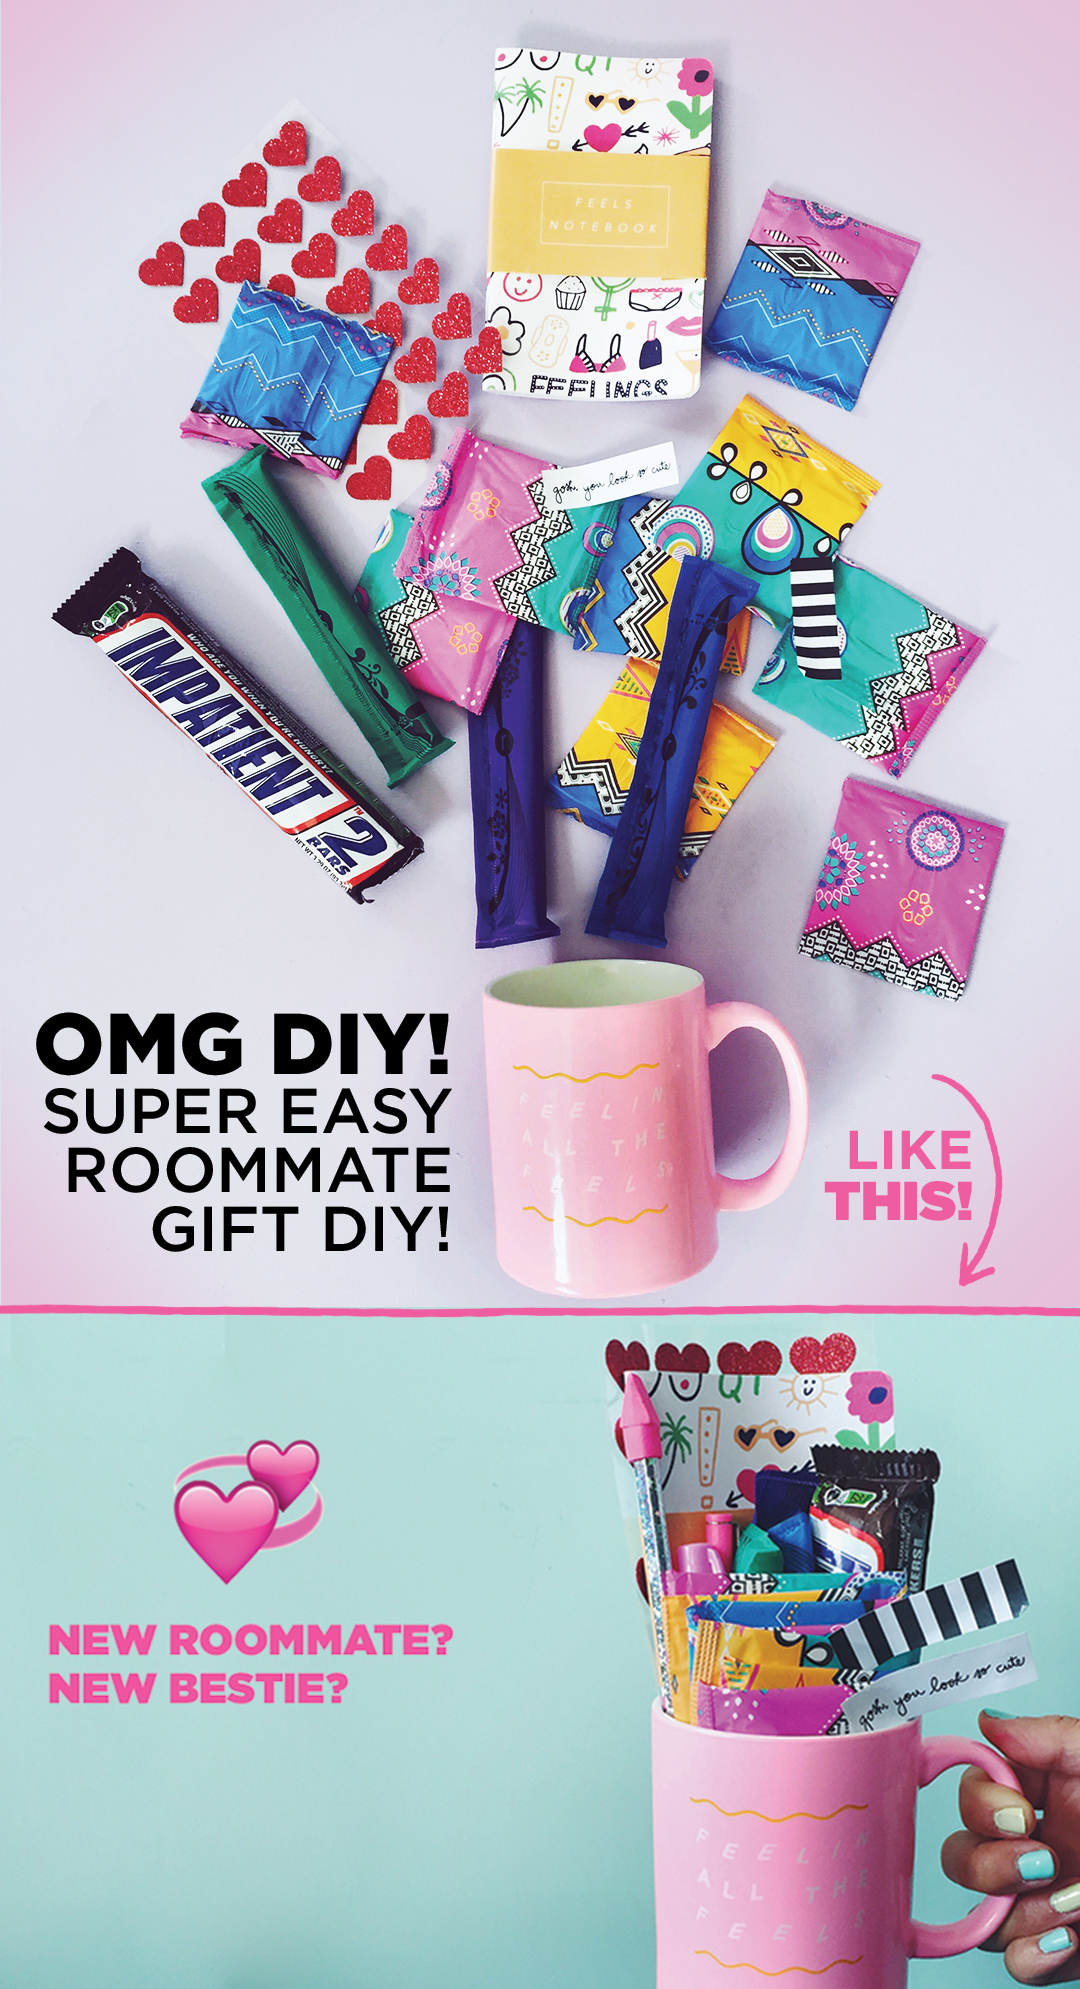 Assemble This Super Fun Diy Roommate Gift By Filling A Mug